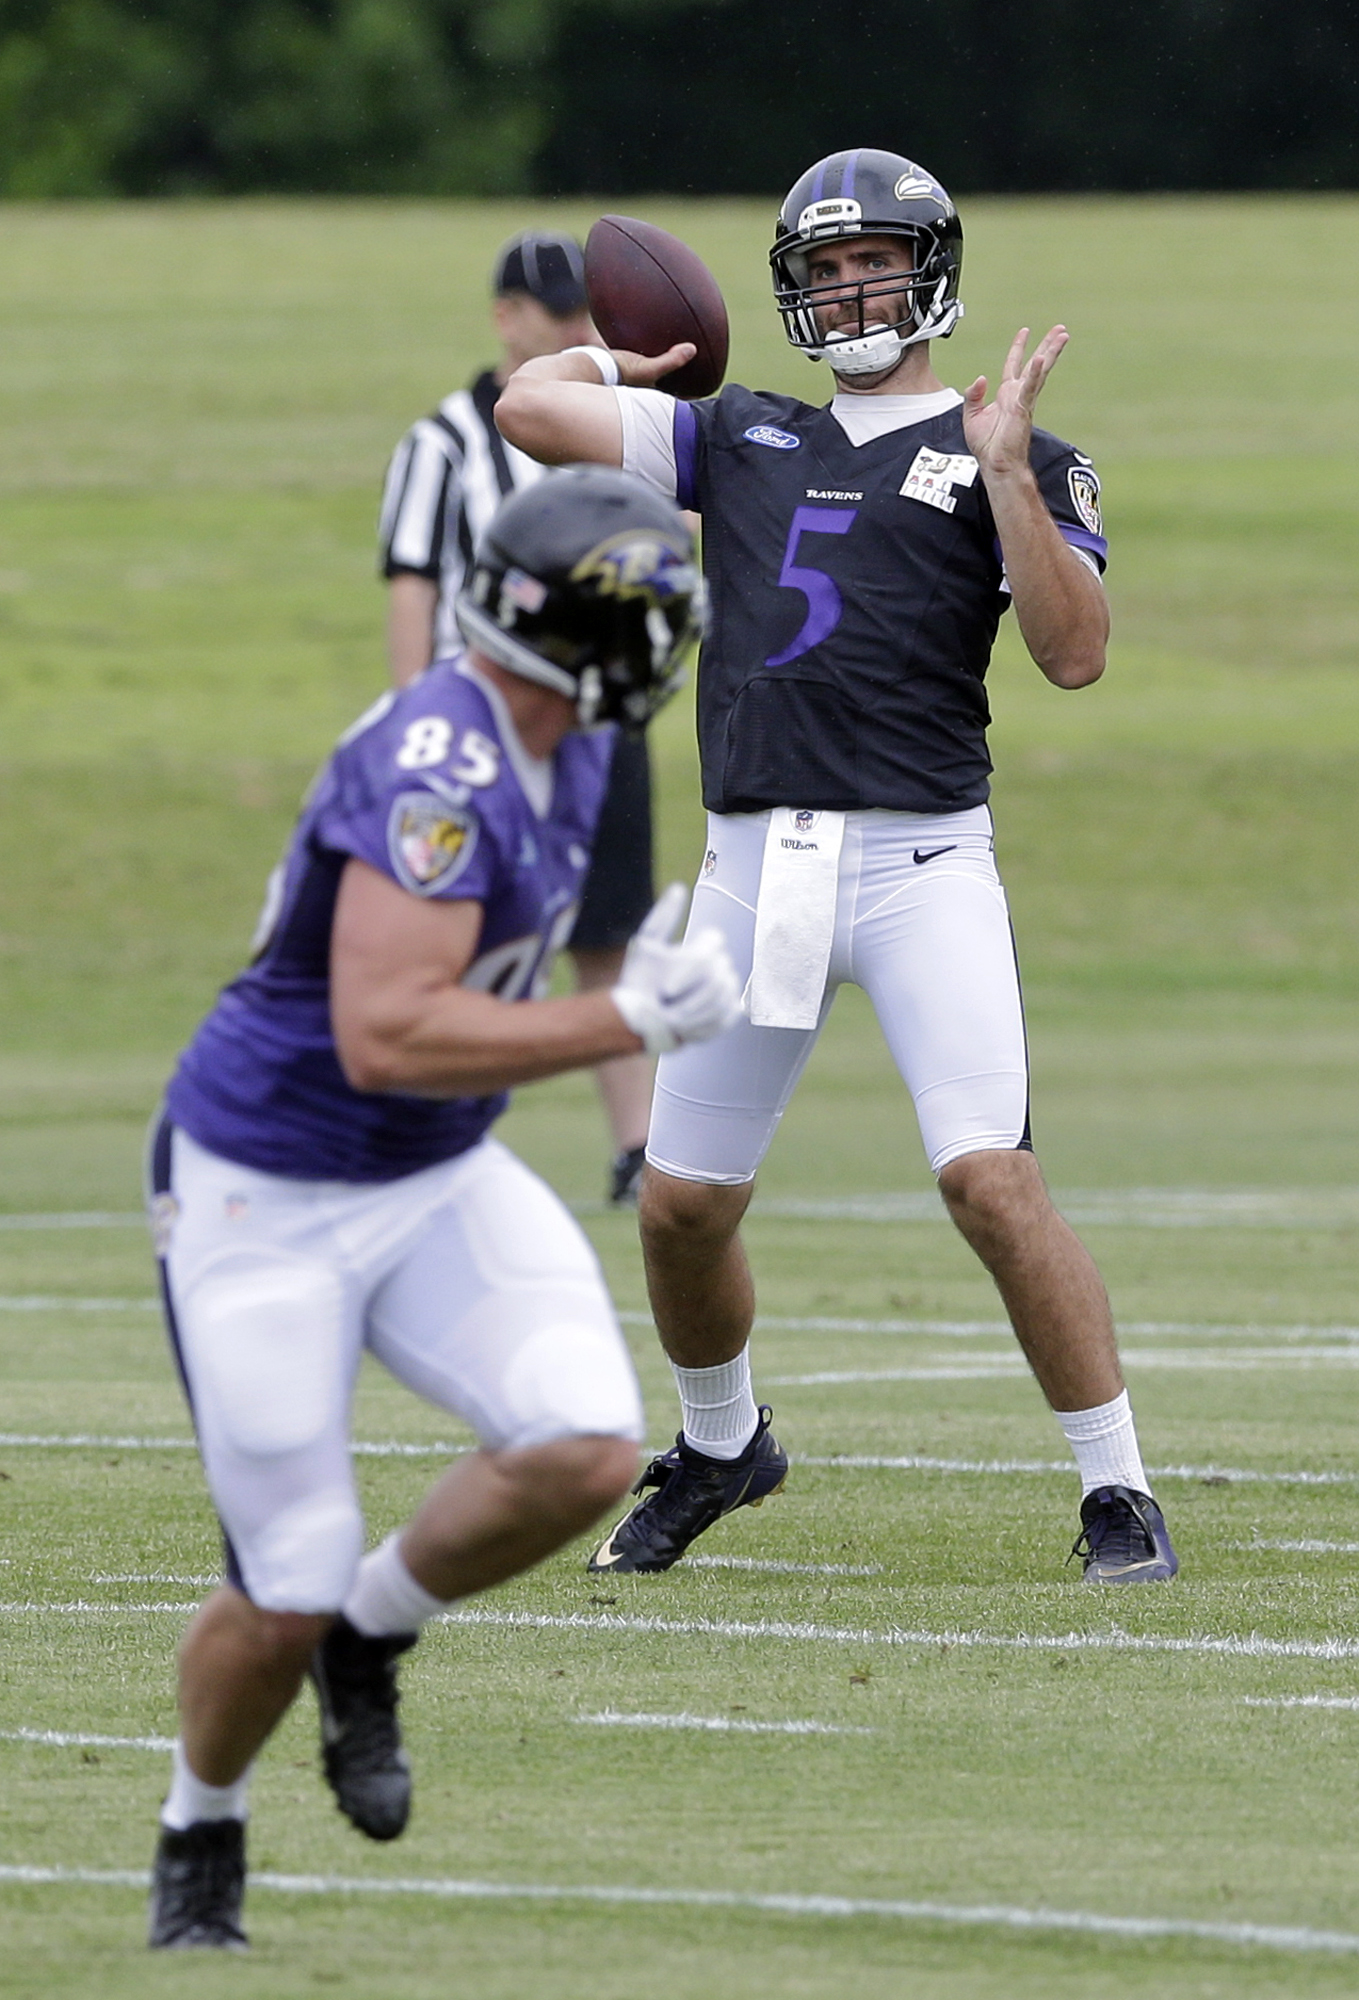 Baltimore Ravens quarterback Joe Flacco (5) throws a pass to tight end Allen Reisner during NFL football minicamp, Wednesday, June 17, 2015, in Owings Mills, Md. (AP Photo/Patrick Semansky)